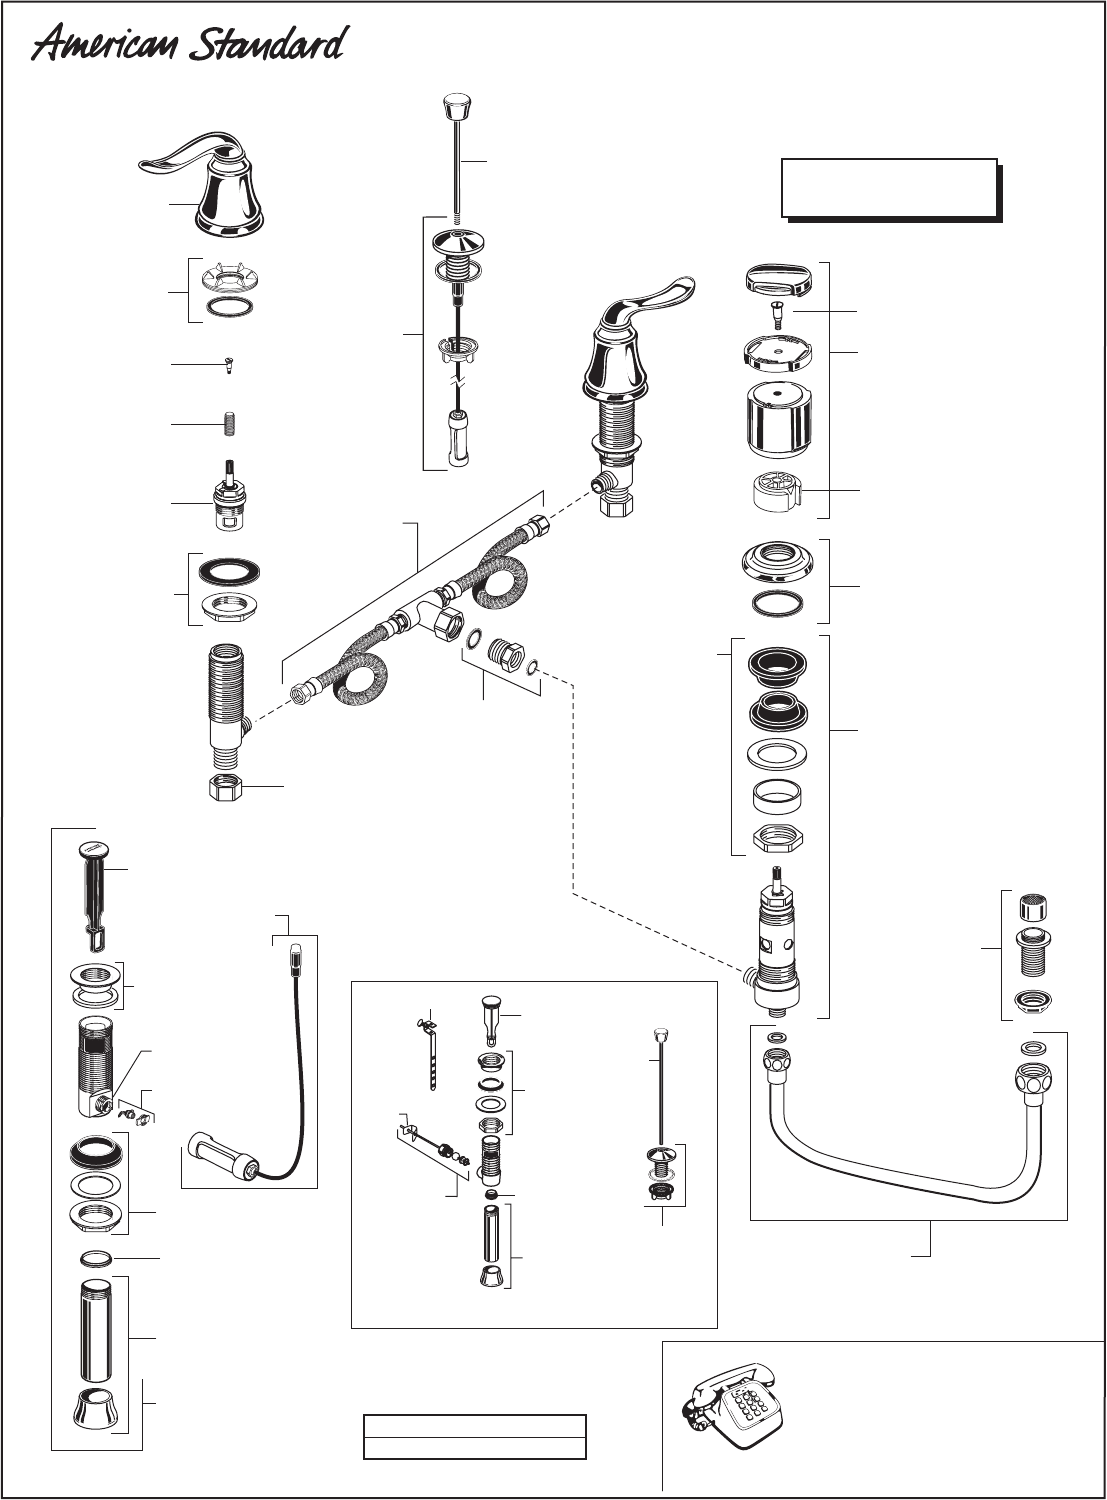 Page 7 of American Standard Plumbing Product 4508.4 User